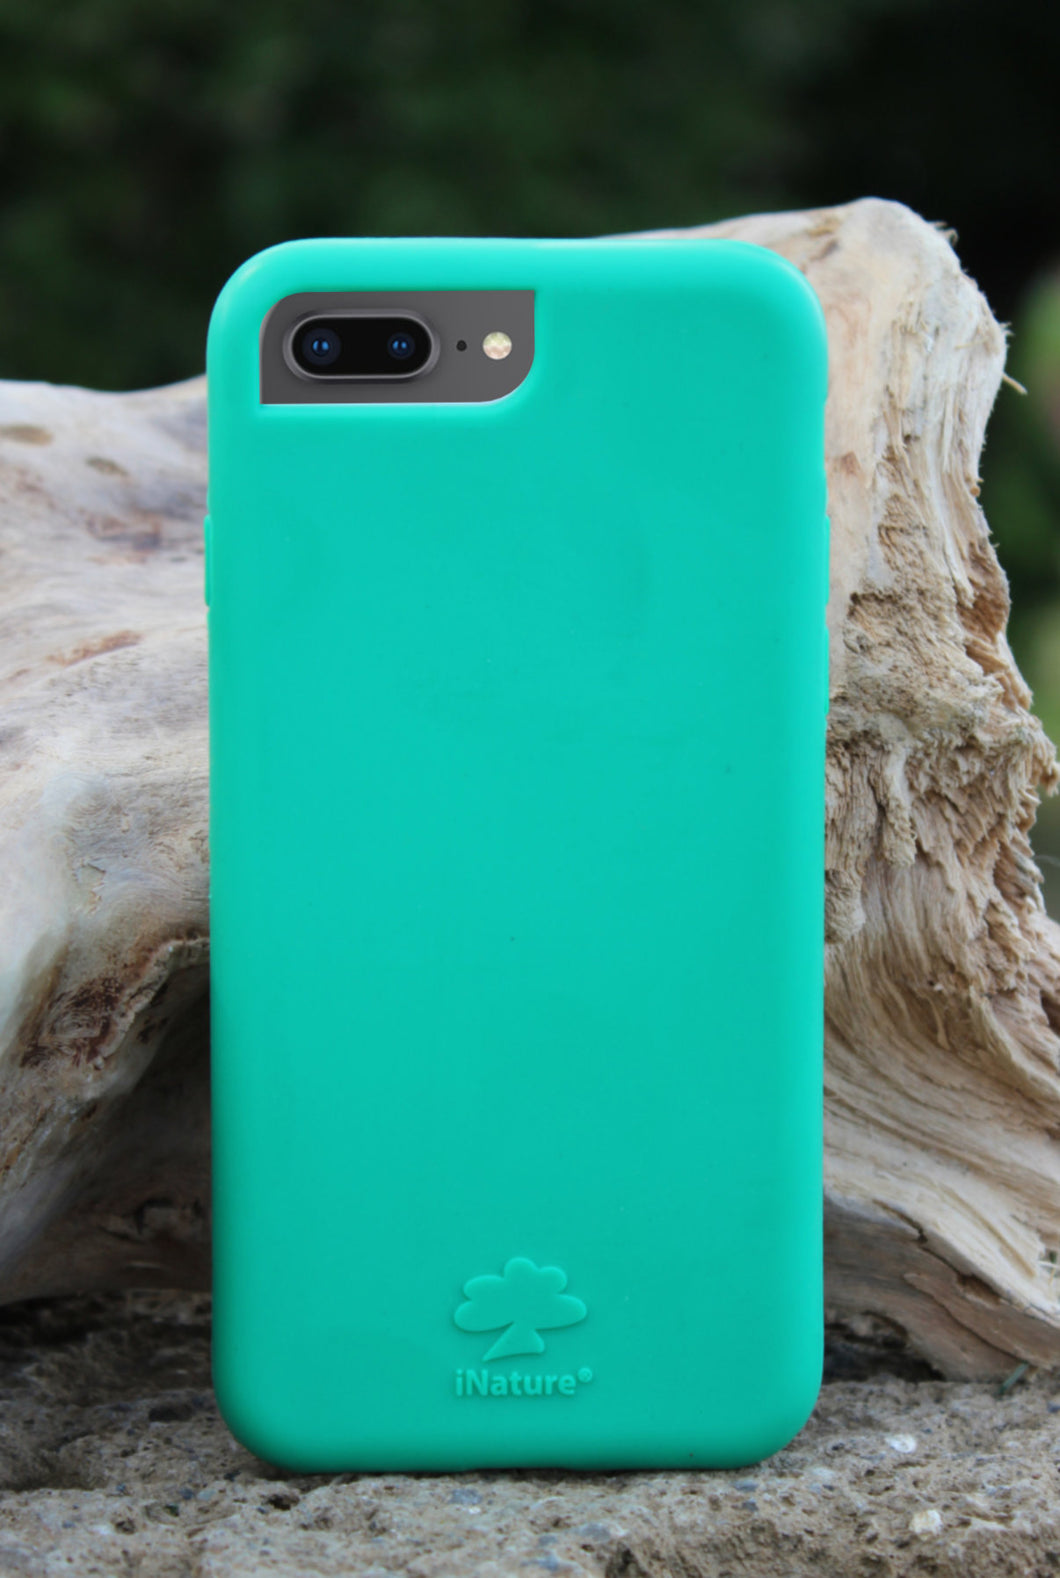 Custodia iNature iPhone 7/8 Plus - Verde Prato